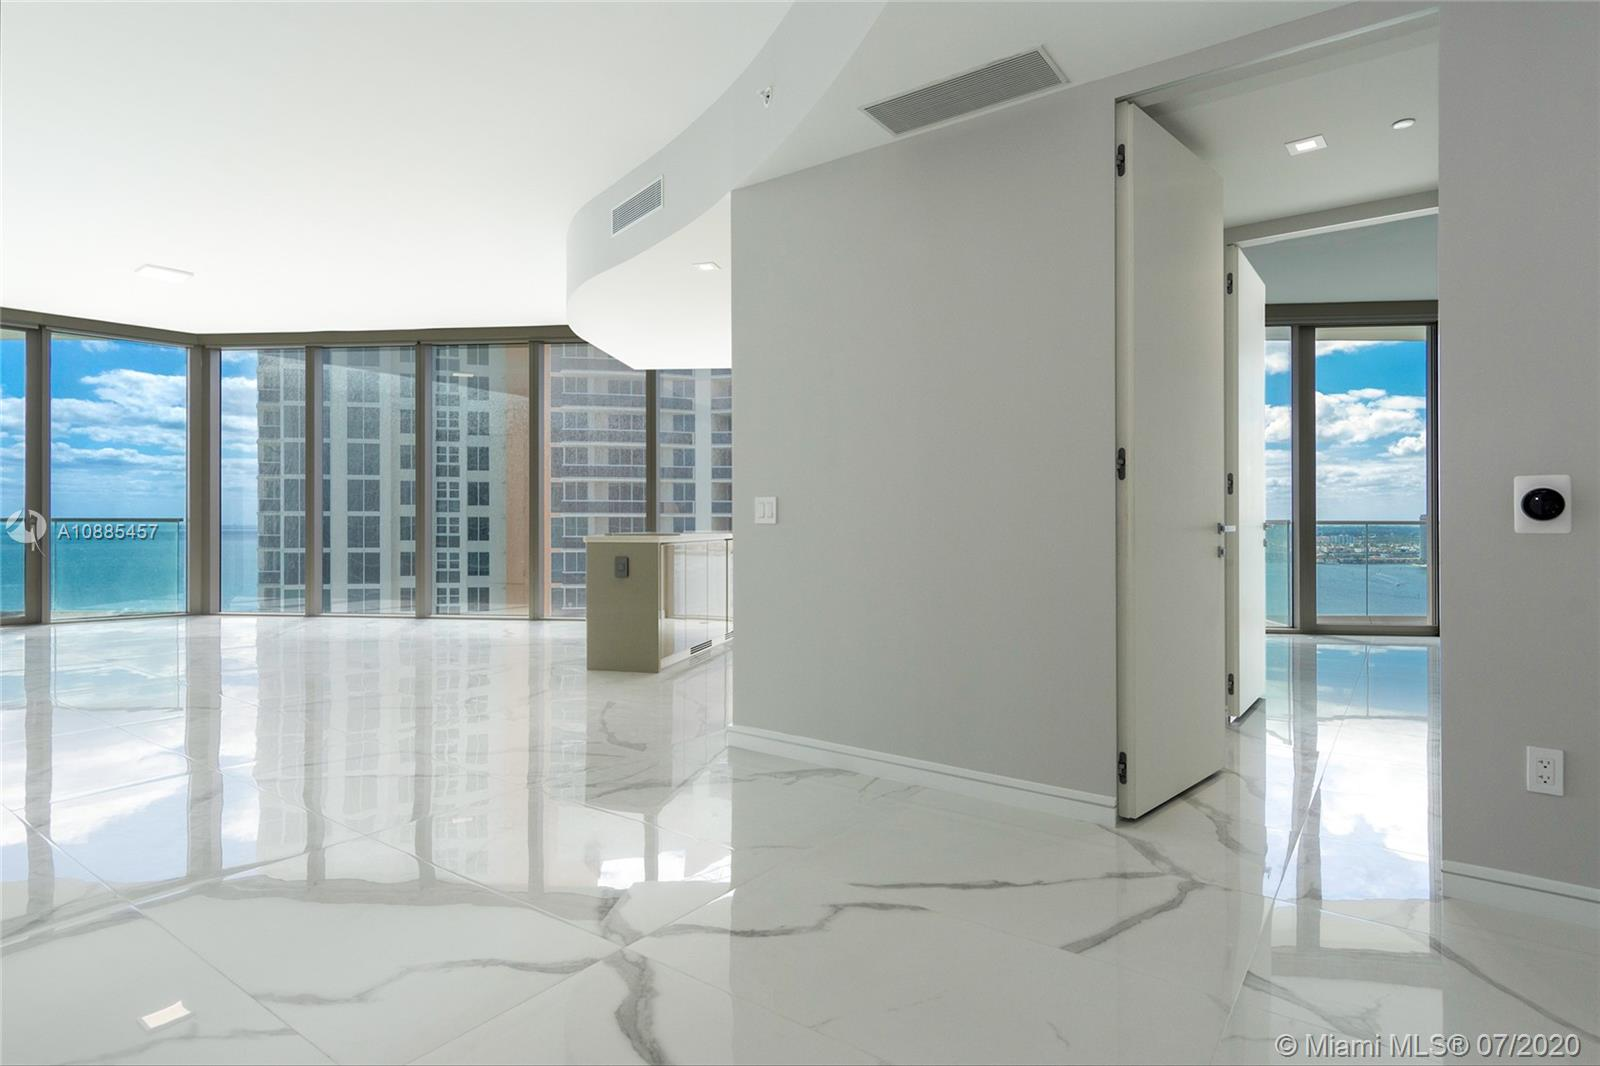 Italian finest Design met Miami's Ultra luxury. Residences by Armani will delight you with its style. This 2022 SF, residence is located in the south-east corner, best line of the building featuring unobstructed Ocean. 2 Bed+Den+2½ Bath.State of the Art amenities are endless, Gym, Spa, Salon, Restaurant, Pool, Beach Service, Cigar Room, Children and Youth game rooms, Café and Bar. Valet parking. Motivated seller